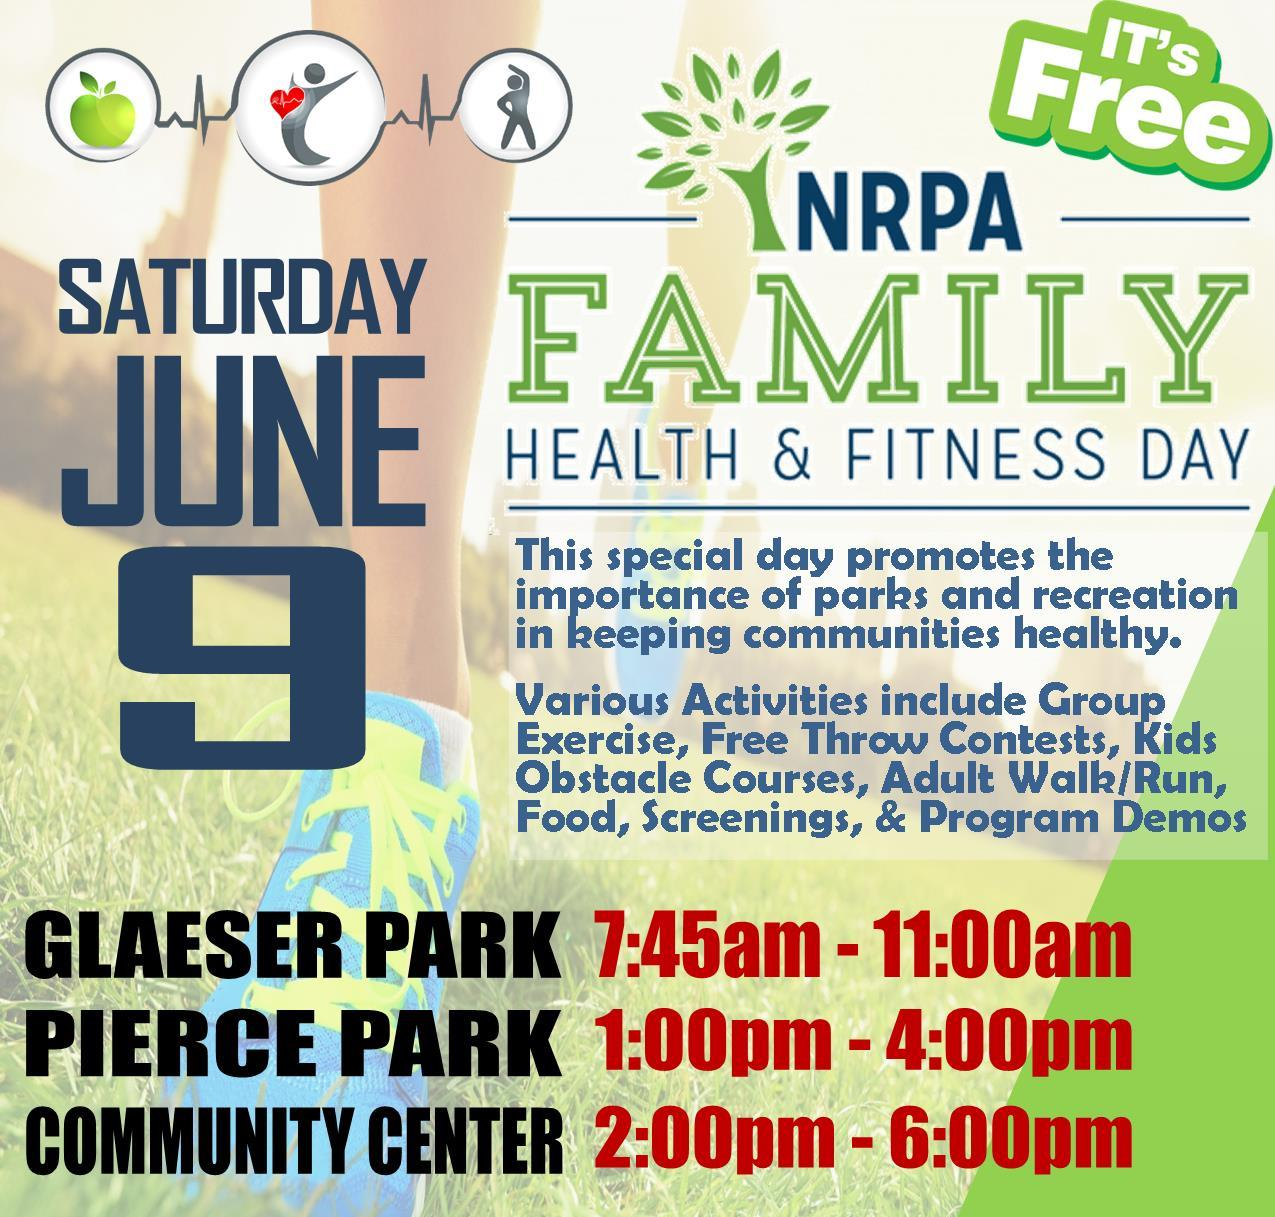 NPRA Family Health n Fitness Day 2018 sq